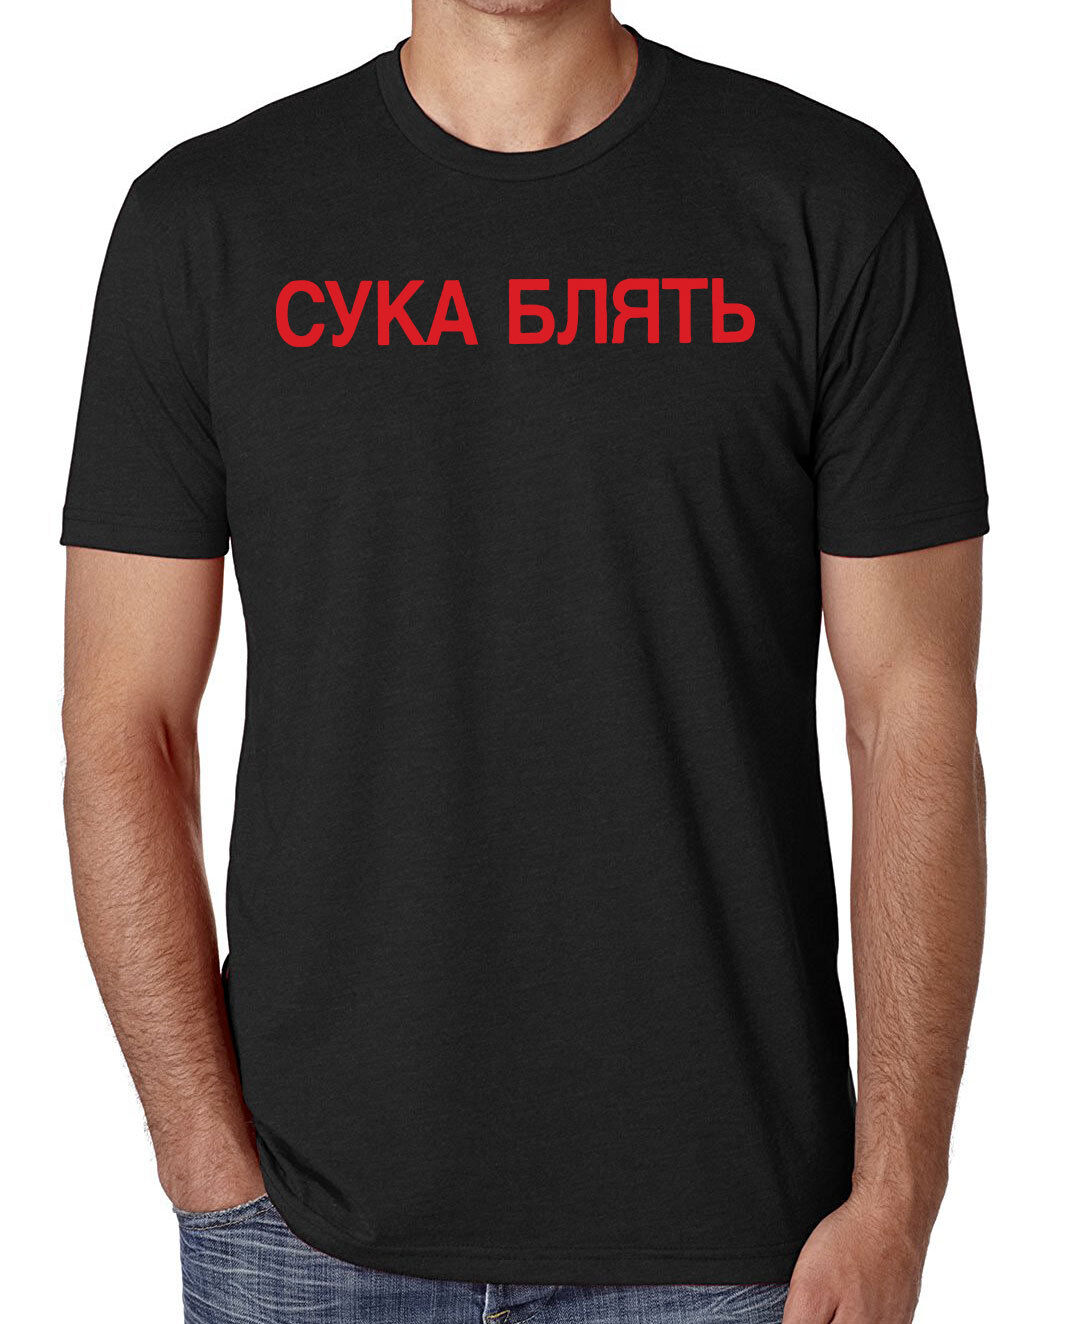 New Pewdiepie Inspired Merch Only Real Cykas T-Shirt 2018